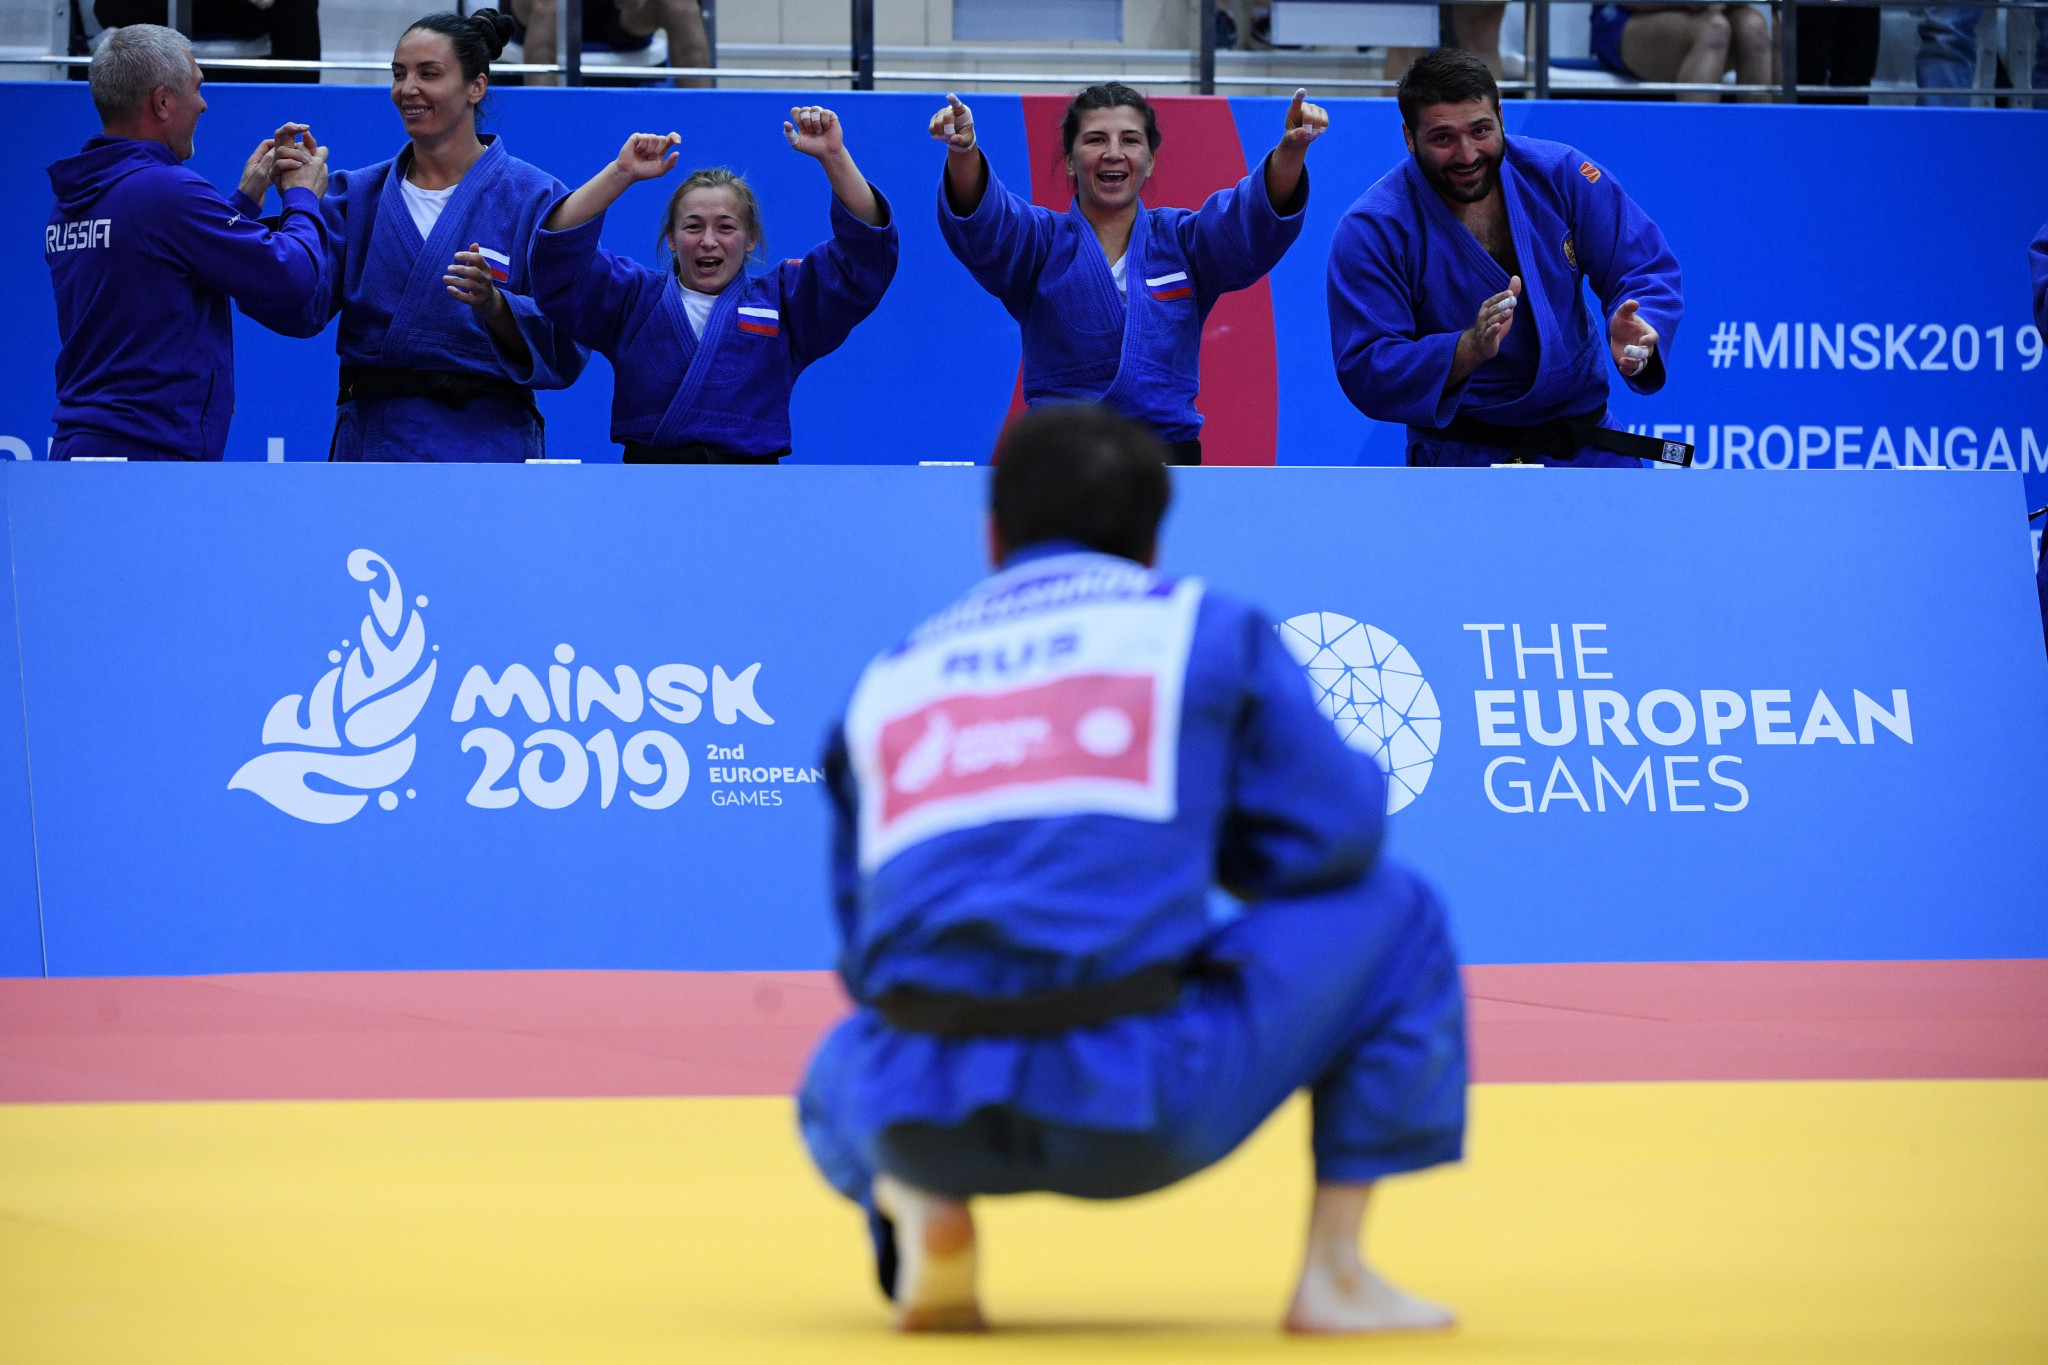 Mogushkov's golden score heroics complete dramatic judo mixed team victory for Russia at Minsk 2019